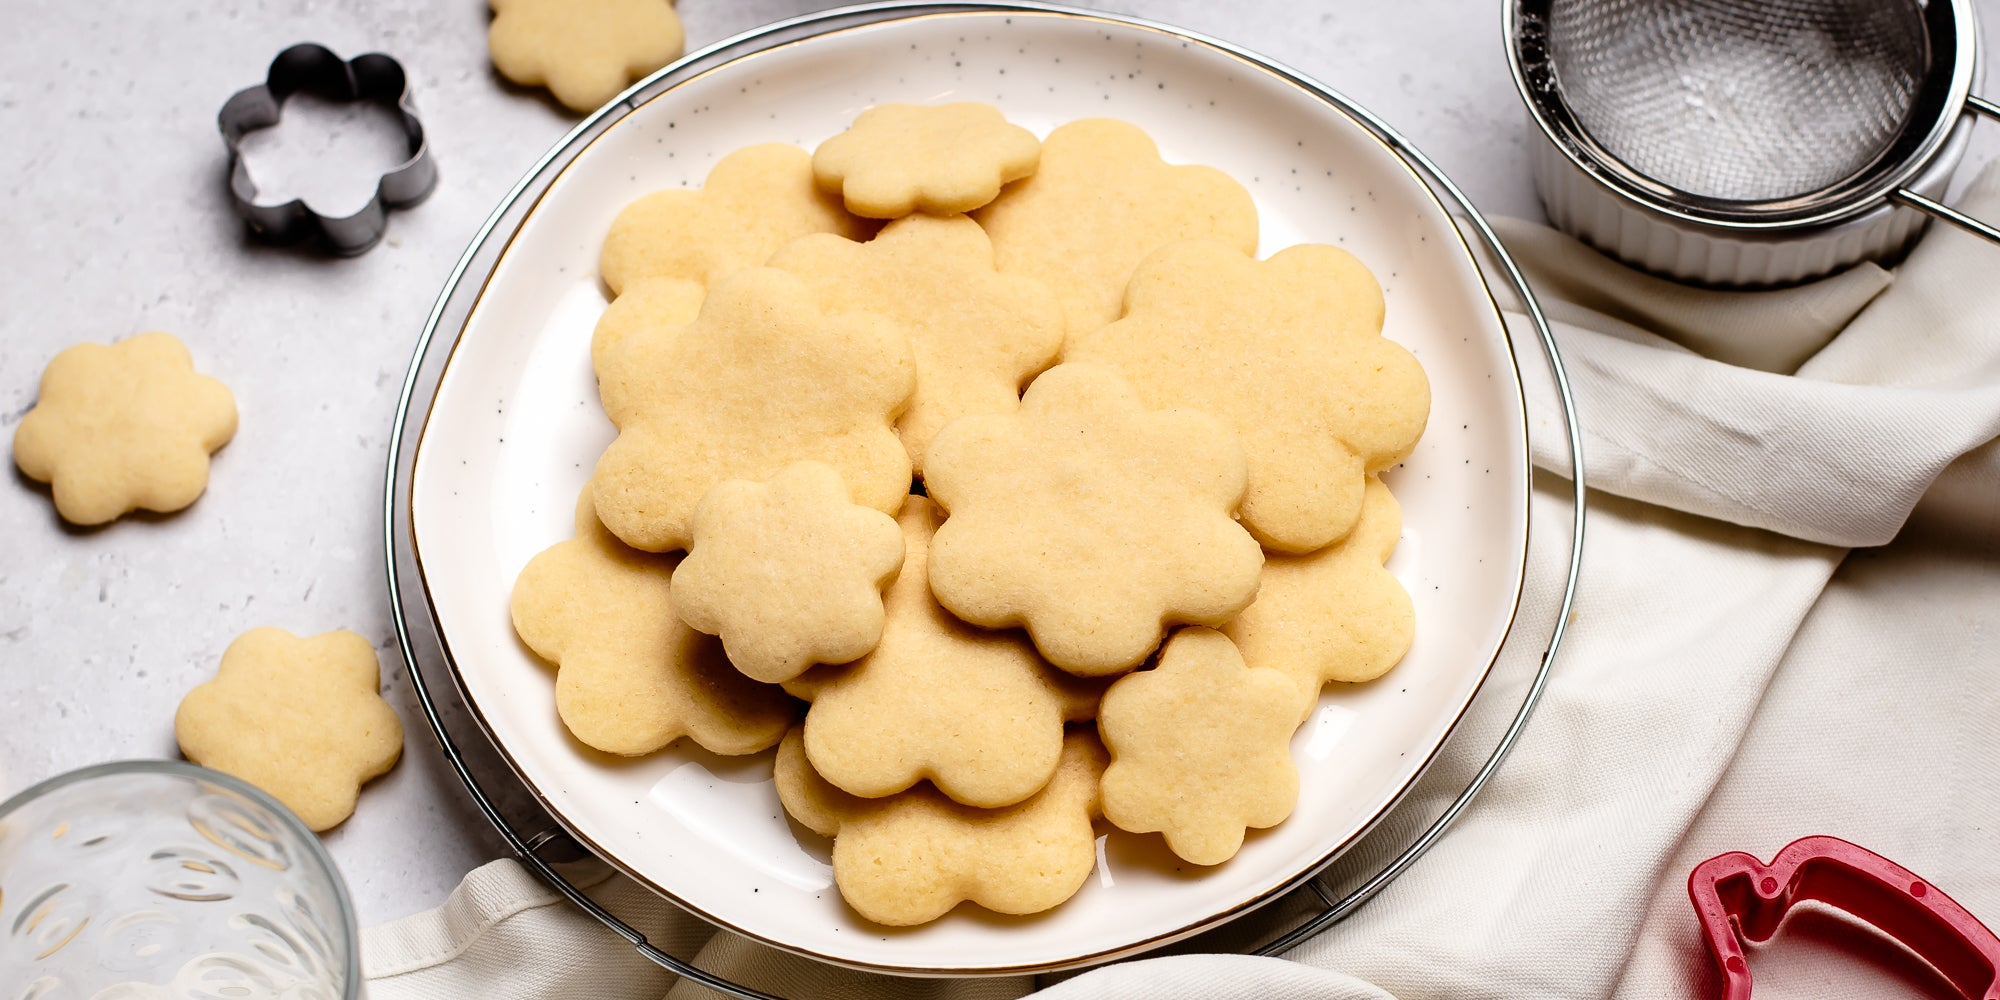 Biscuits baked with the Basic Biscuit Dough recipe, on a plate next to biscuit cutters and a sieve